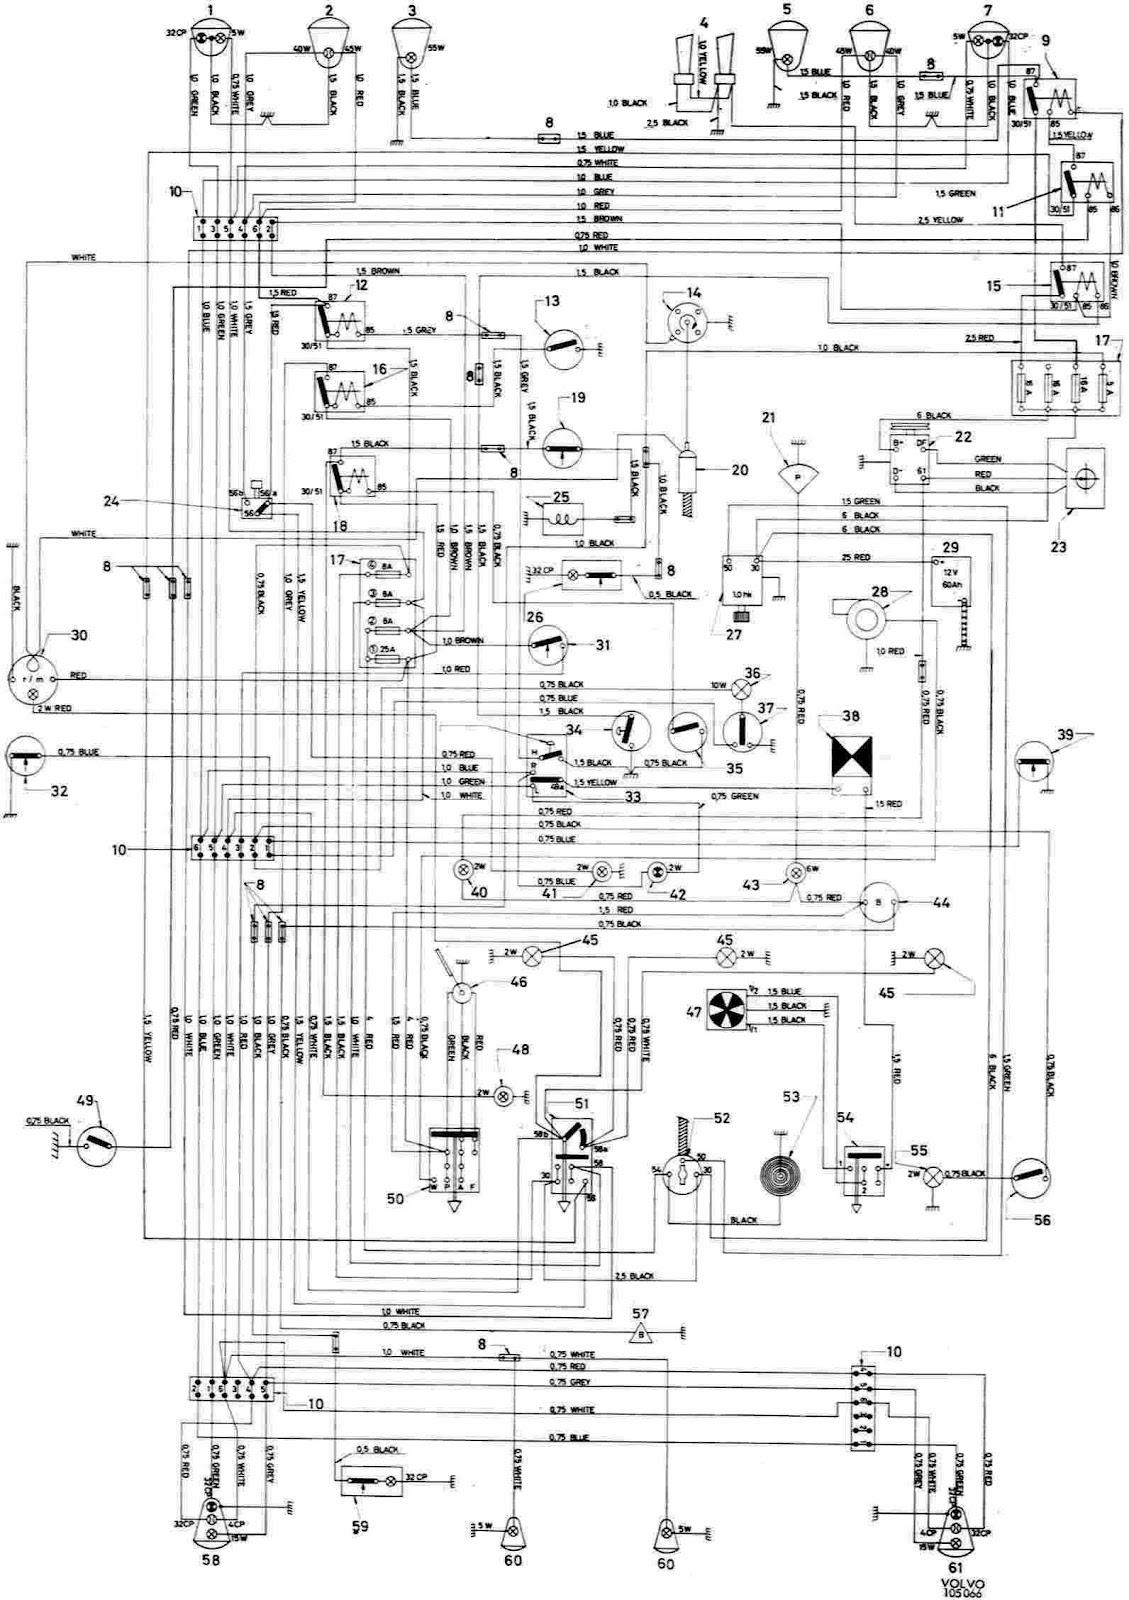 wiring diagram further volvo 240 radio antenna along with 2005 volvo 2005 volvo s40 stereo wiring harness diagram [ 1129 x 1600 Pixel ]